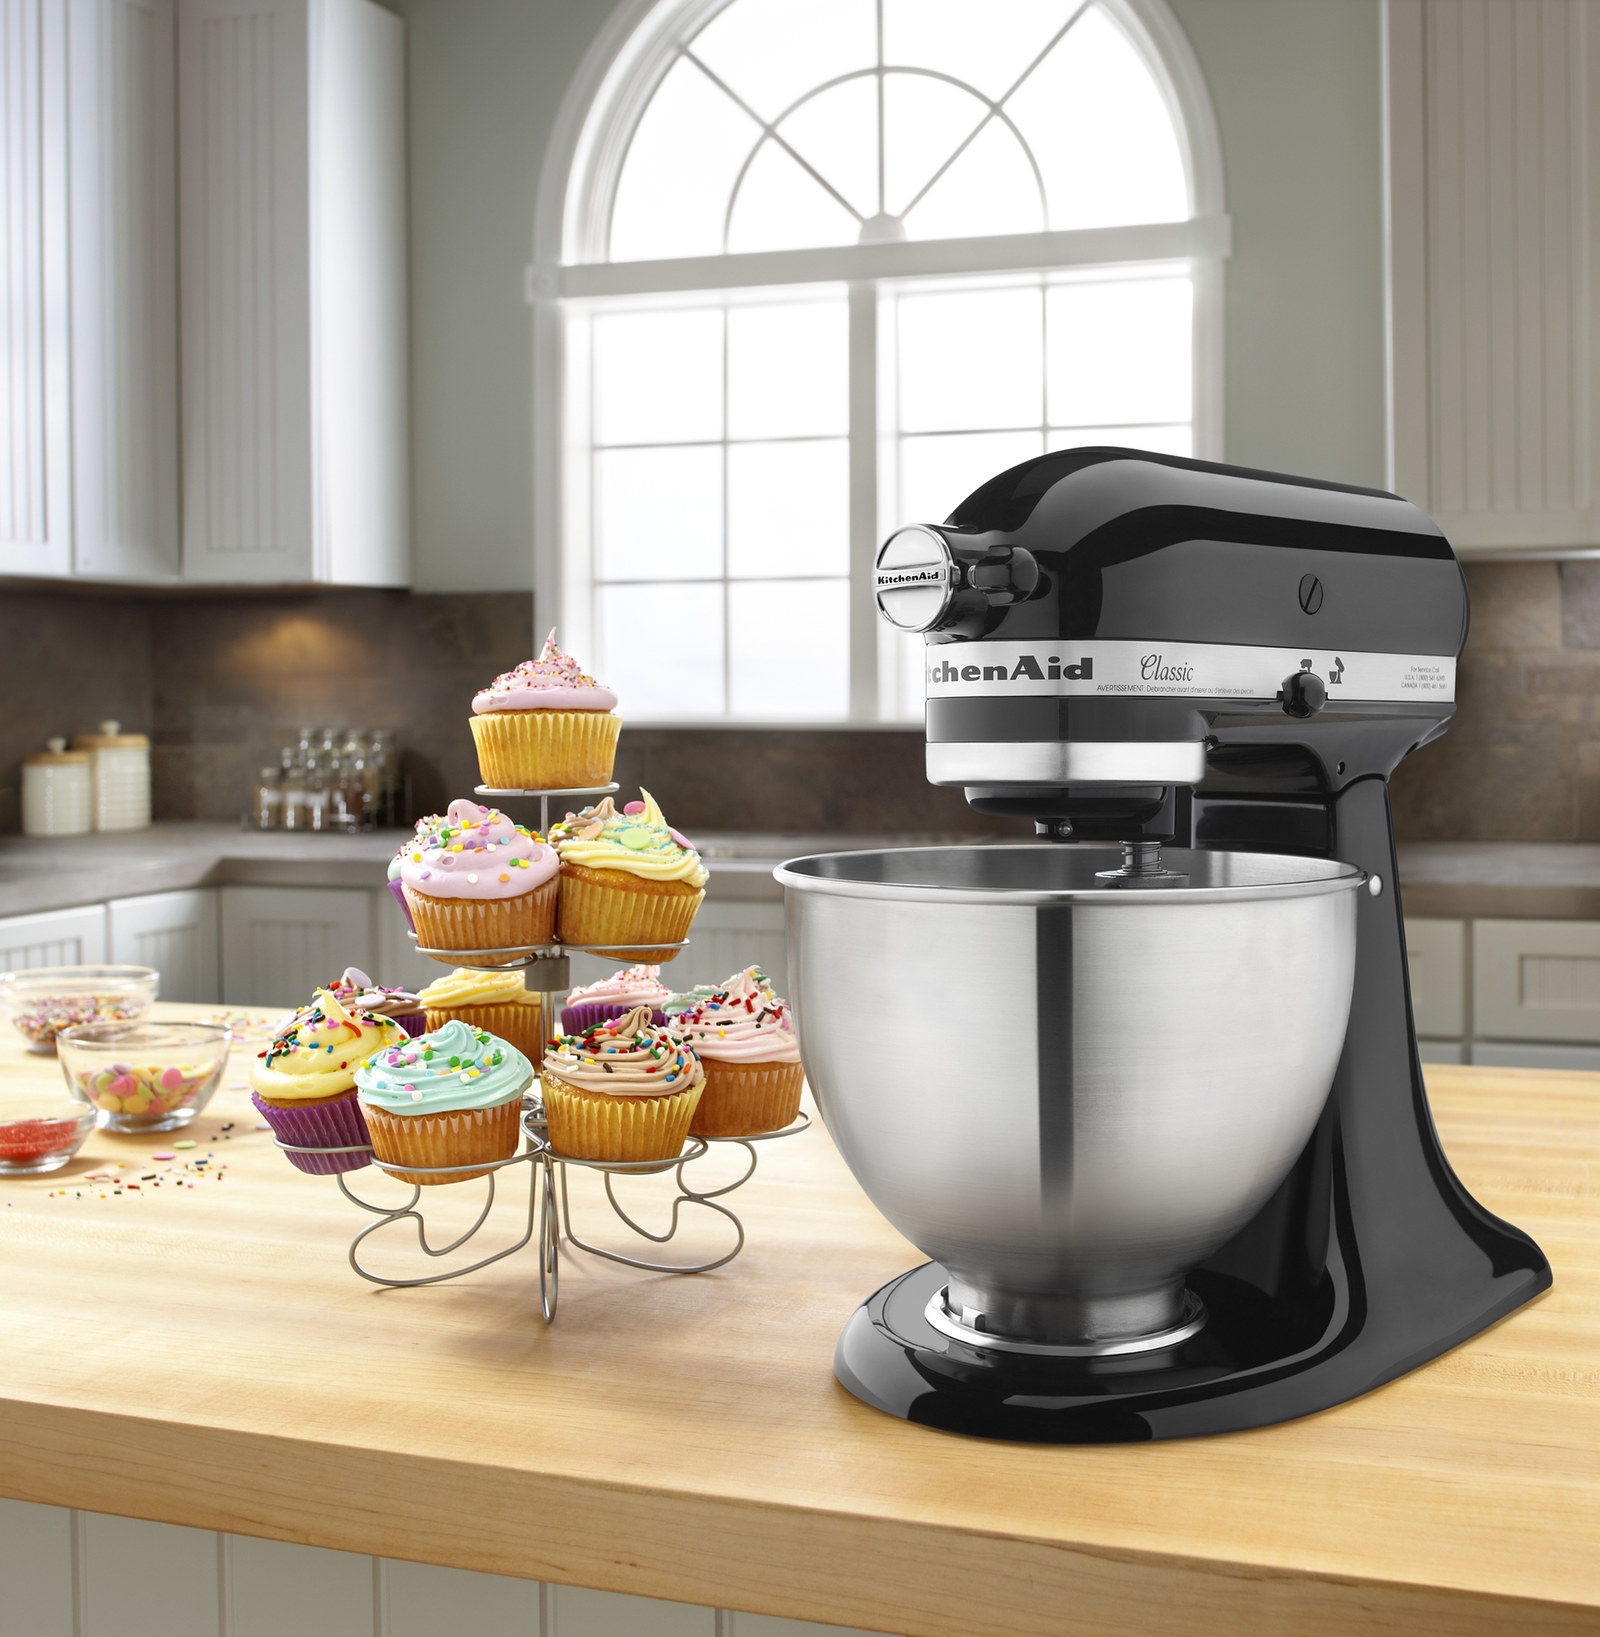 """Promising review: """"WOW is all I can say about the durability, the ease of mixing, the time it saves in the kitchen. You can multi-task when you use this mixer unlike hand mixers. Bread dough is a snap with this machine. It will do everything except roll it out on the board for you. Cookies, cakes, you name it, it's no trouble with this machine."""" —MrGadgetGuruPrice: $189 (originally $225.27)"""